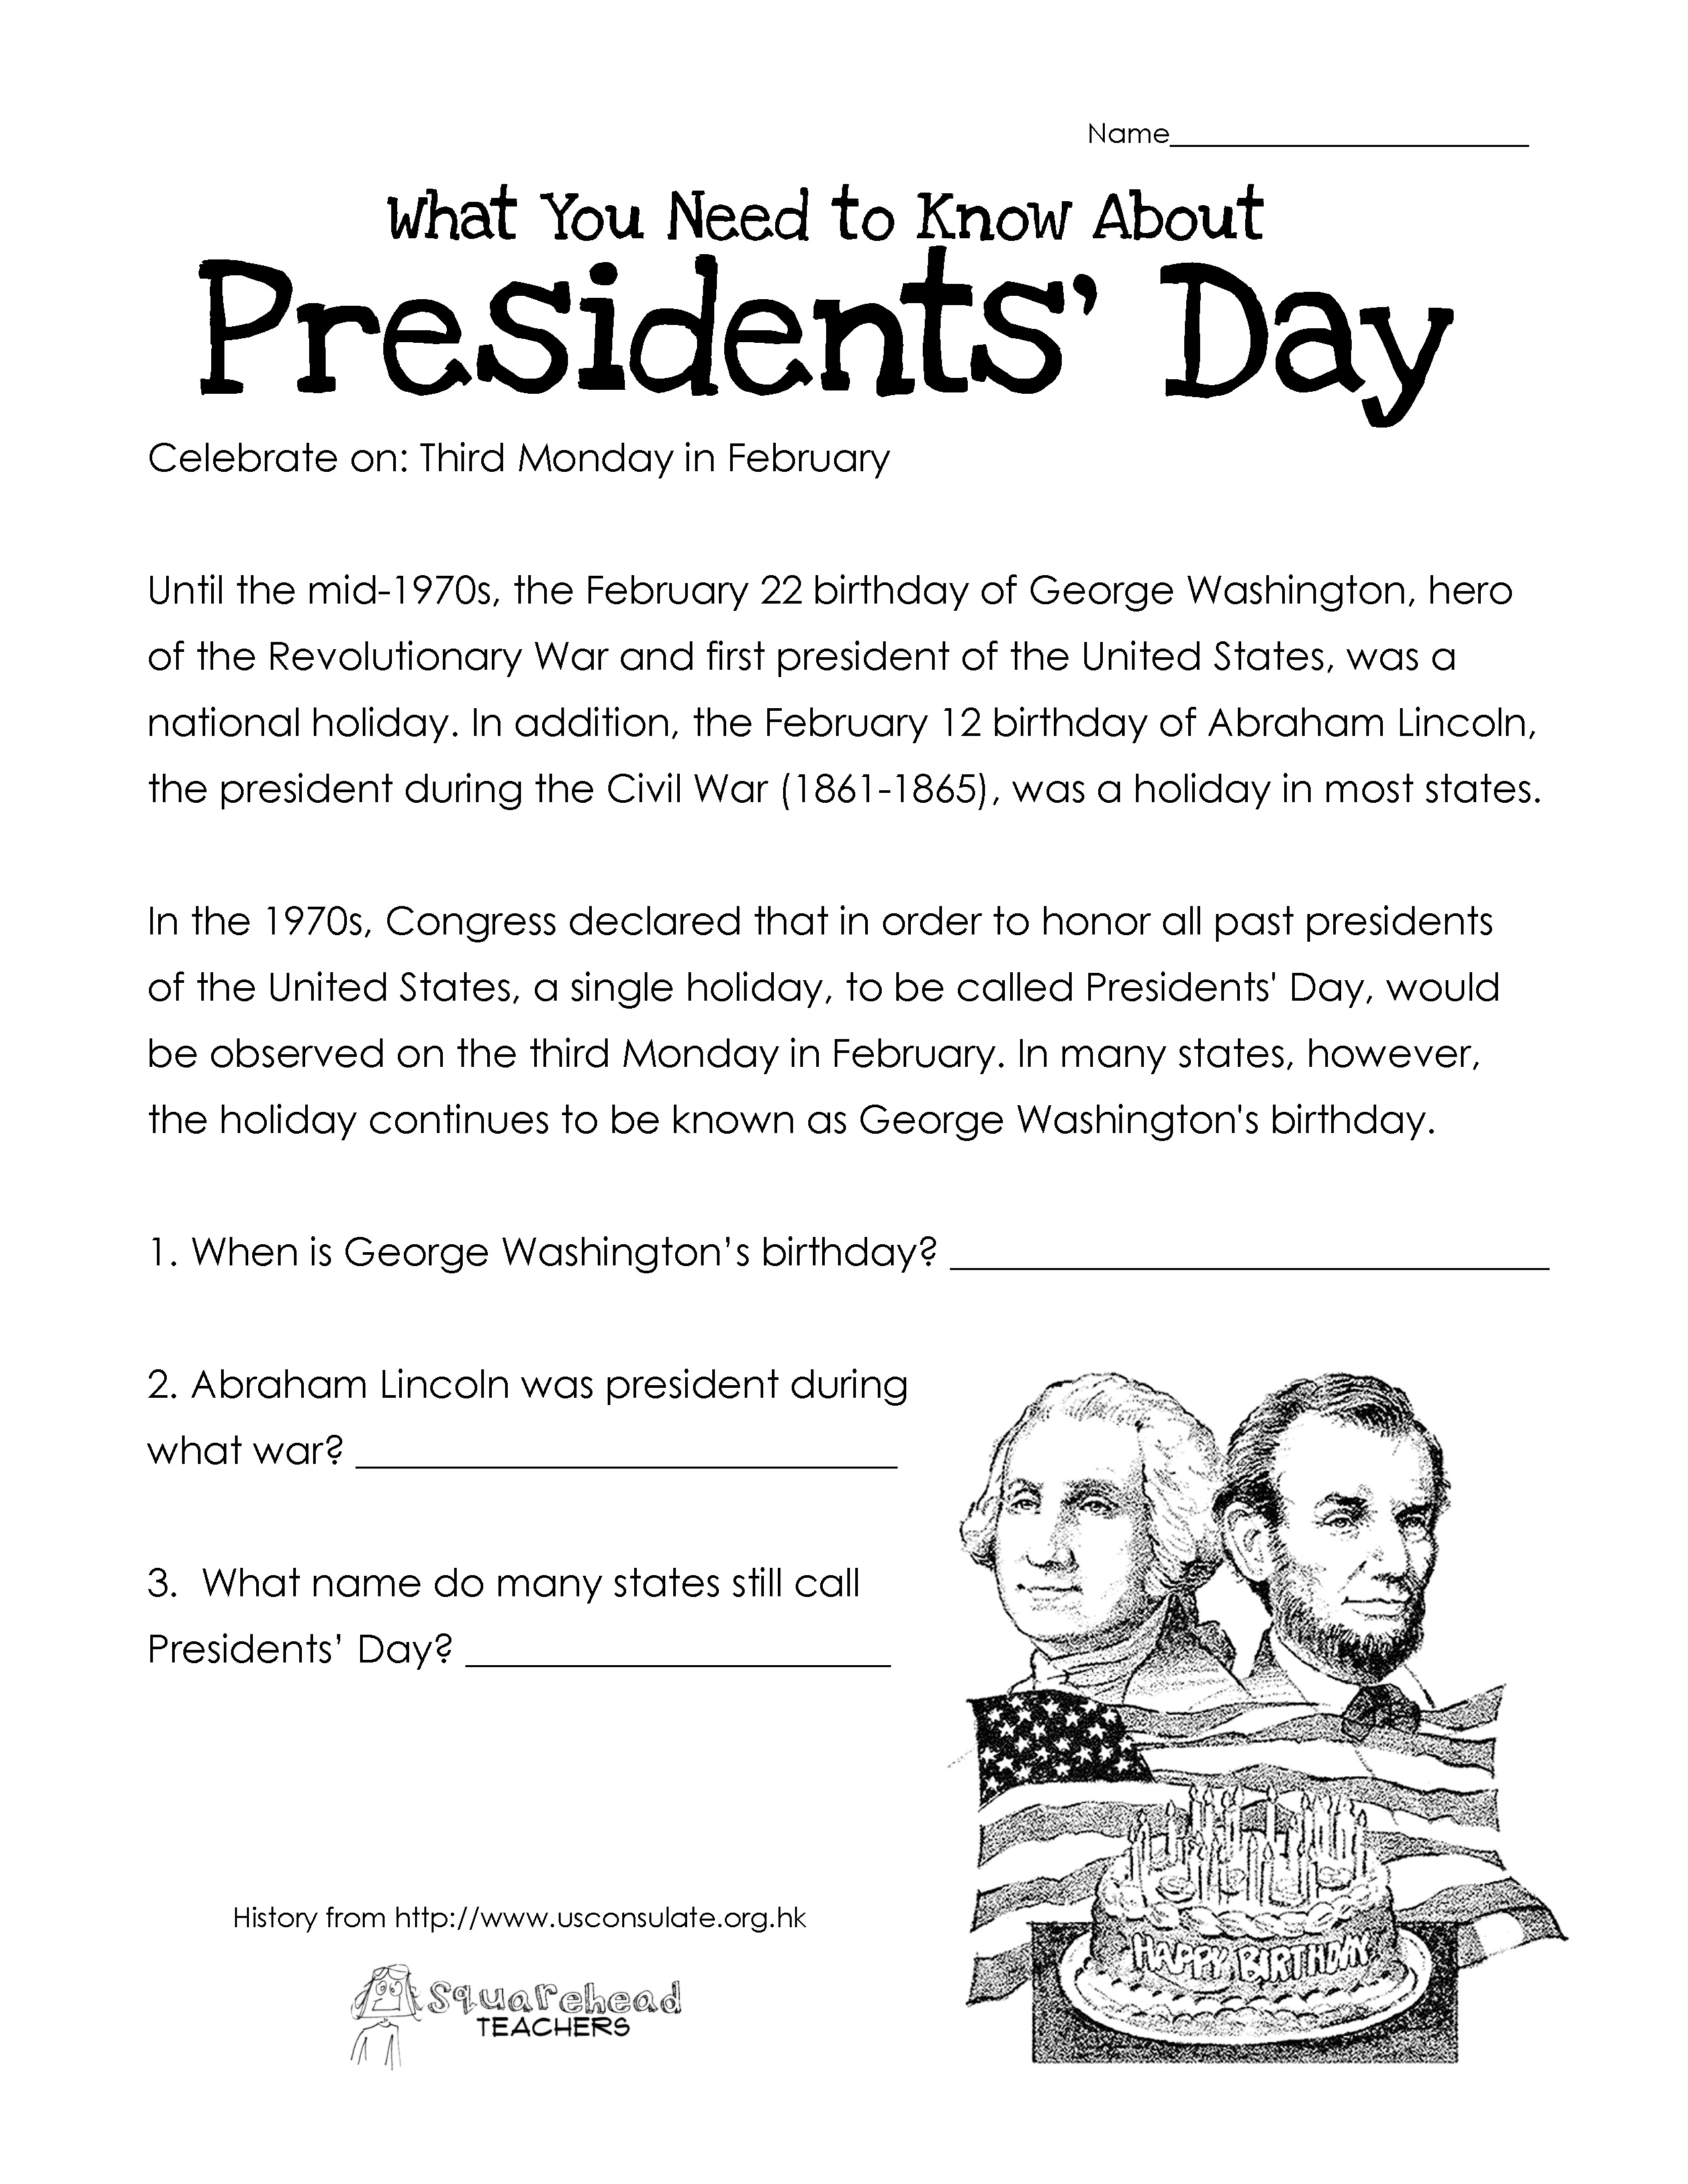 Presidents' Day (Free Worksheet) Updated | Squarehead Teachers - Free Printable Presidents Day Worksheets